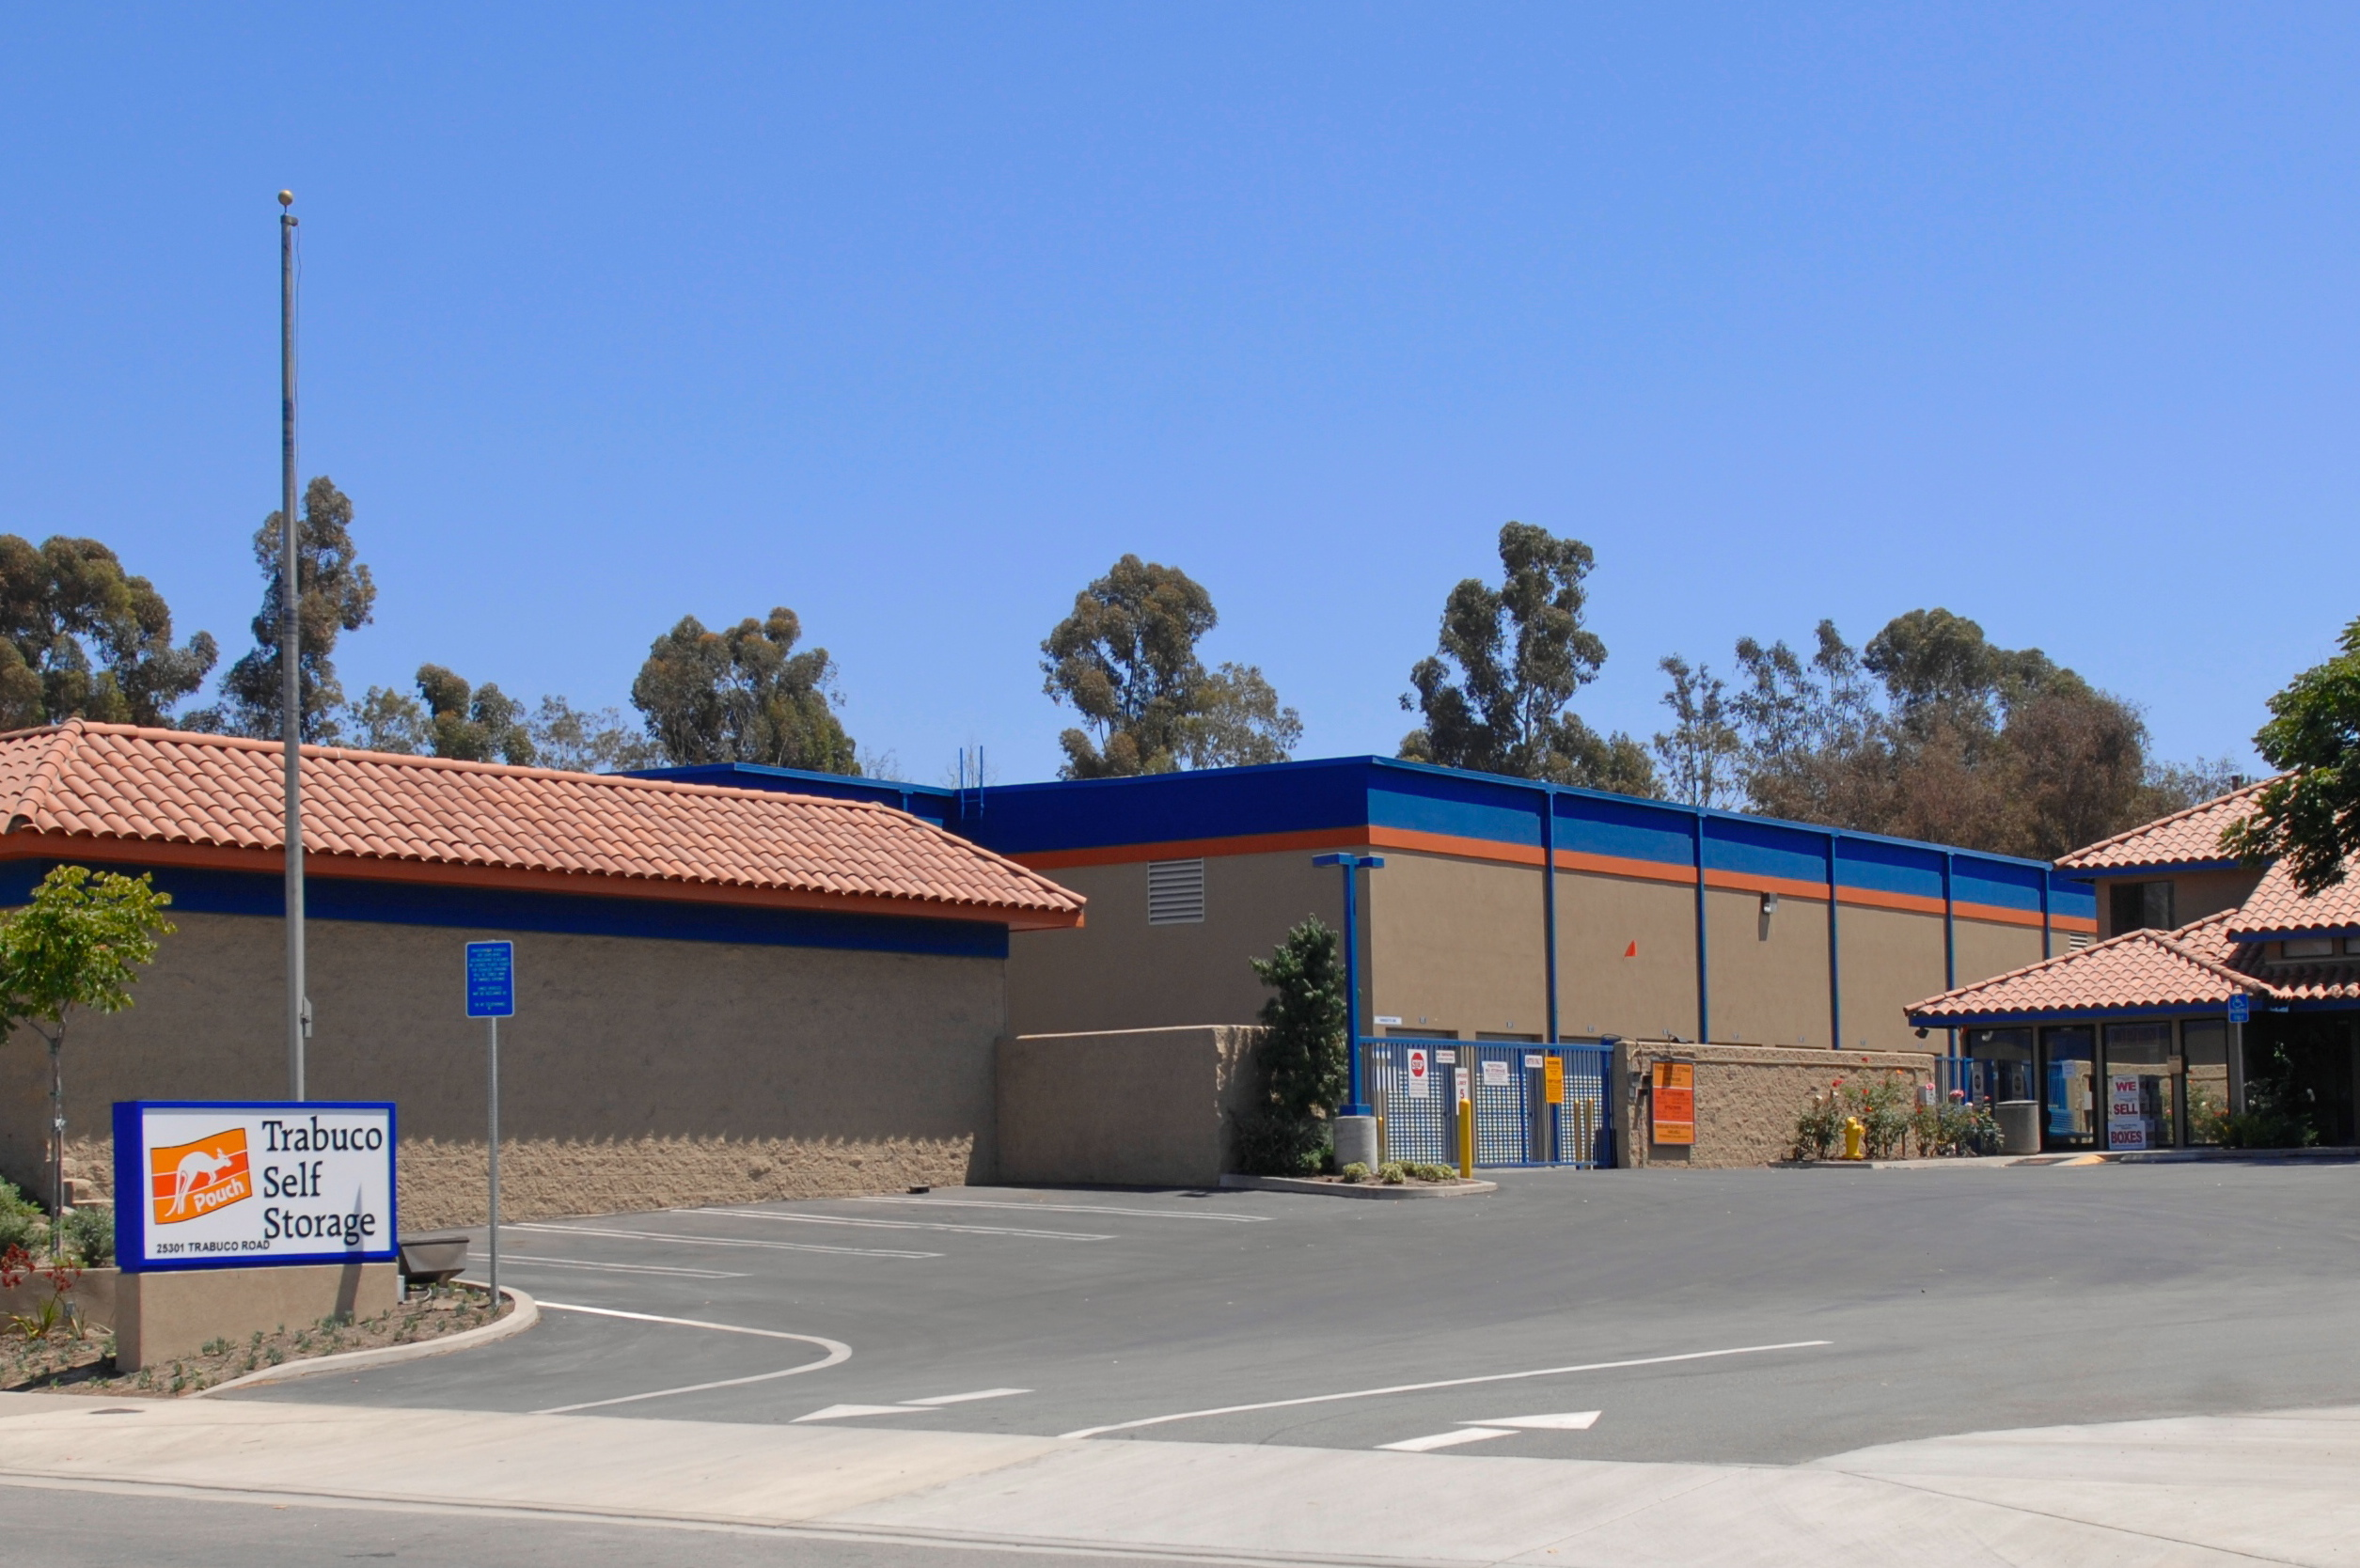 Trabuco Self Storage - Lake Forest image 4